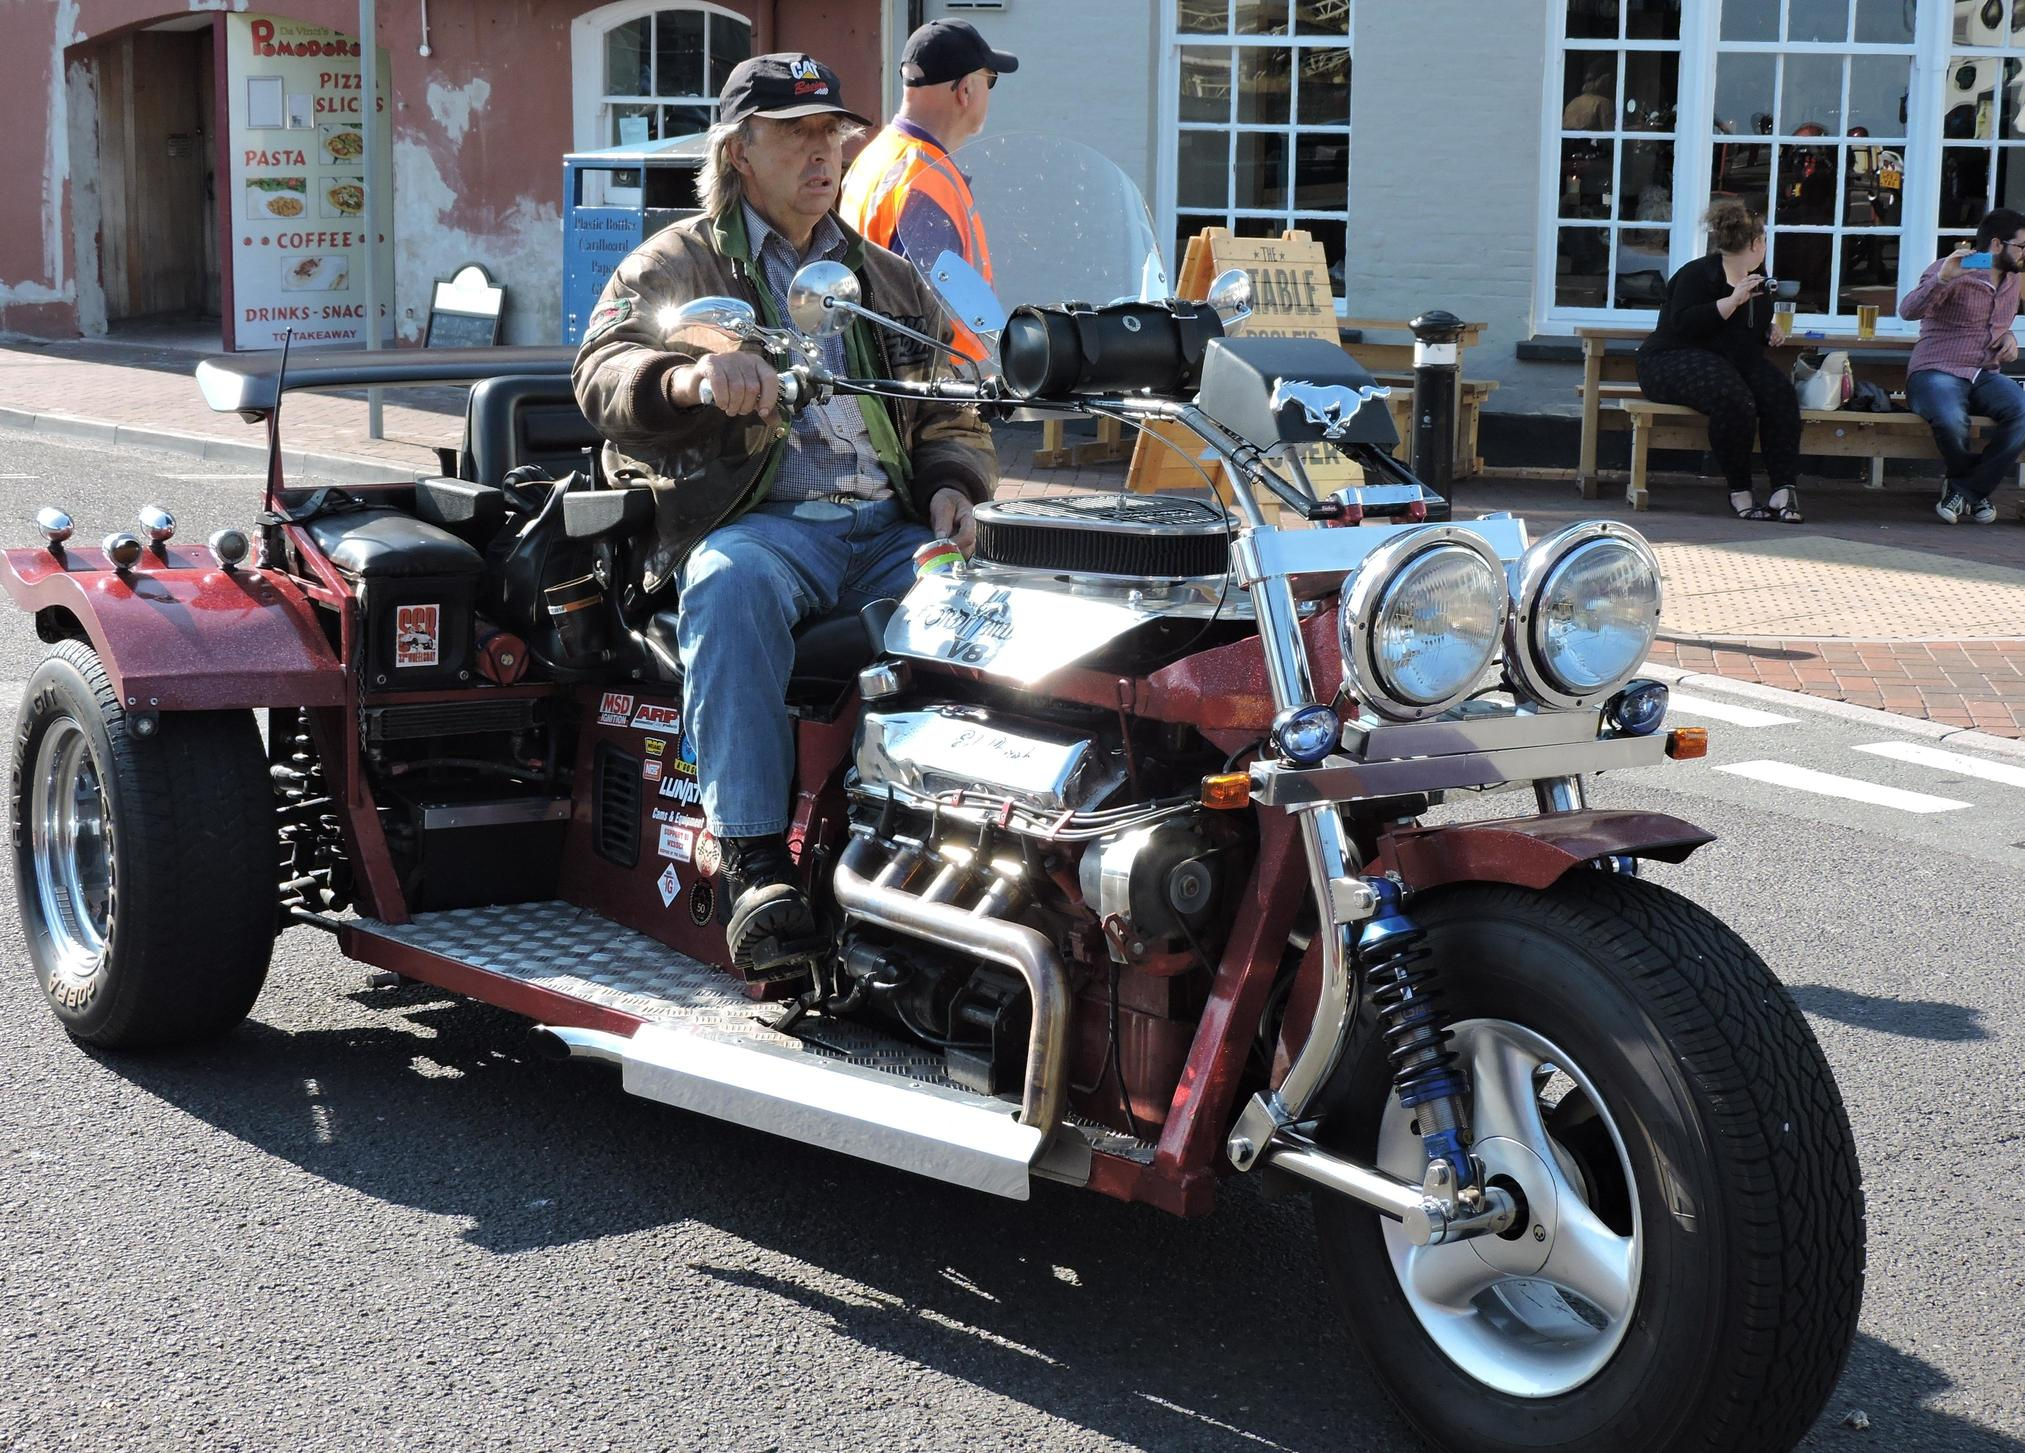 Is a v8 trike a good project motorcycles come in all forms of design build and make a trike otherwise known as a 3 wheel motorcycle is a fusion of both a car and a motorcycle solutioingenieria Images